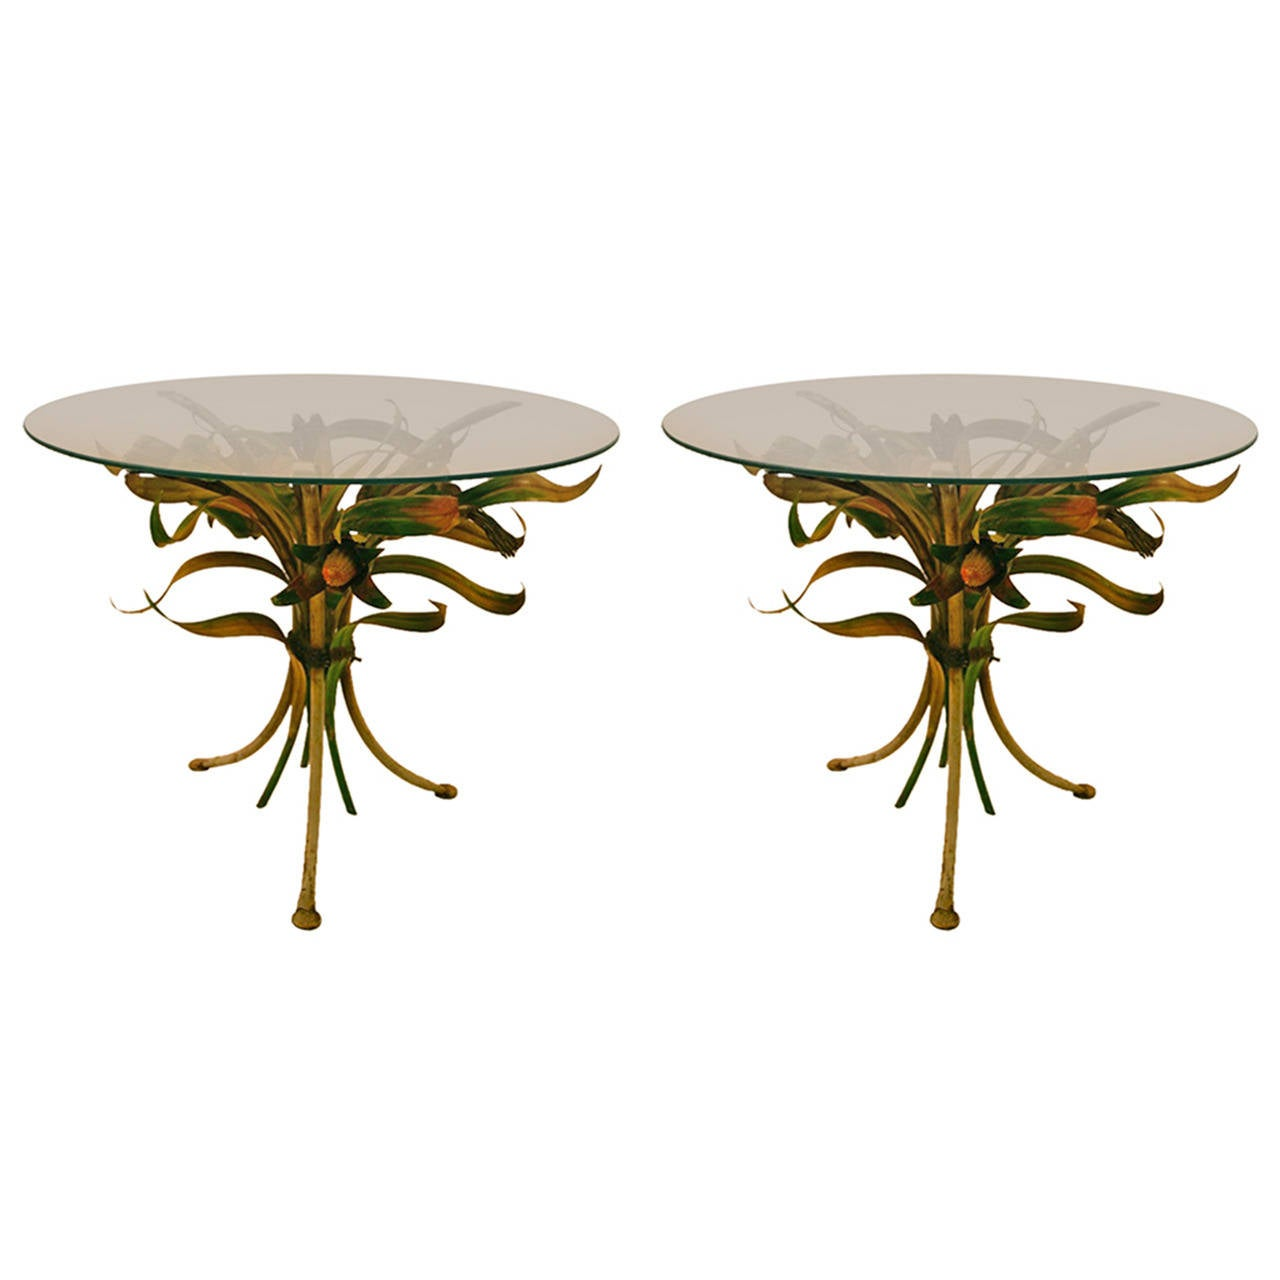 Pair Of Polychrome Italian Metal And Glass Foliate Tables At 1stdibs